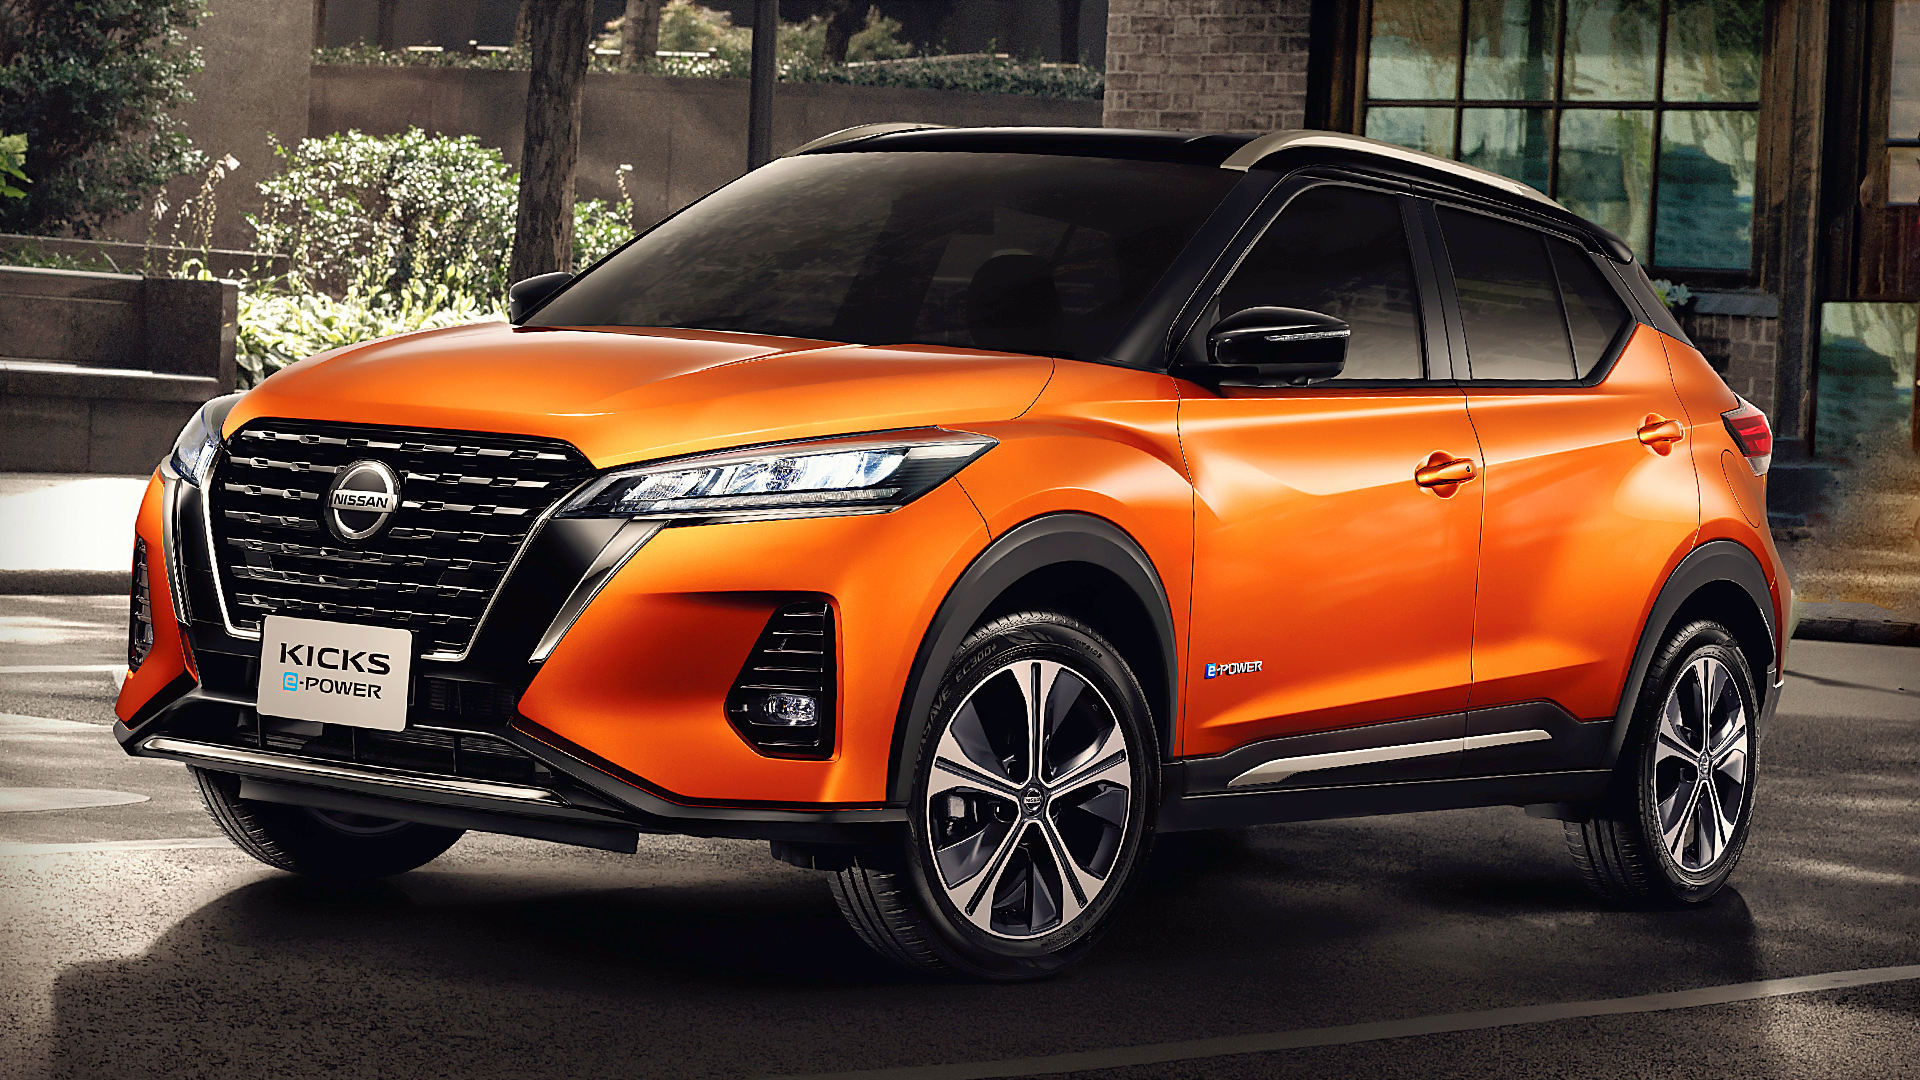 Nissan Kicks E-Power 2020 Photos